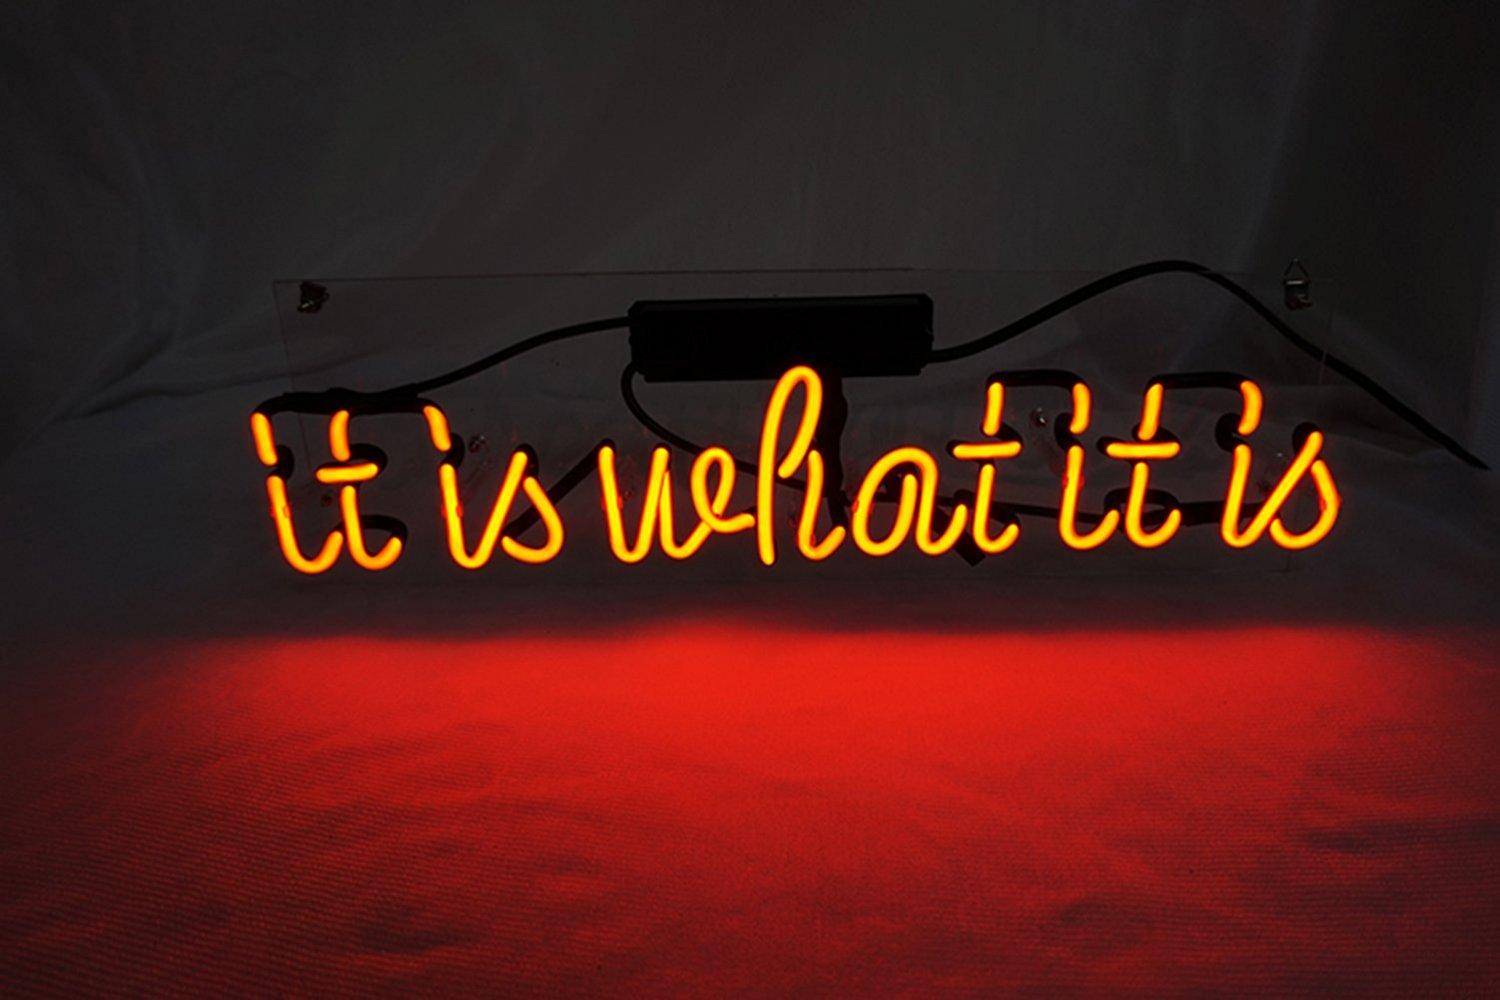 2019 it is what it is 17 7 x 5 9 real neon light sign cool lamp